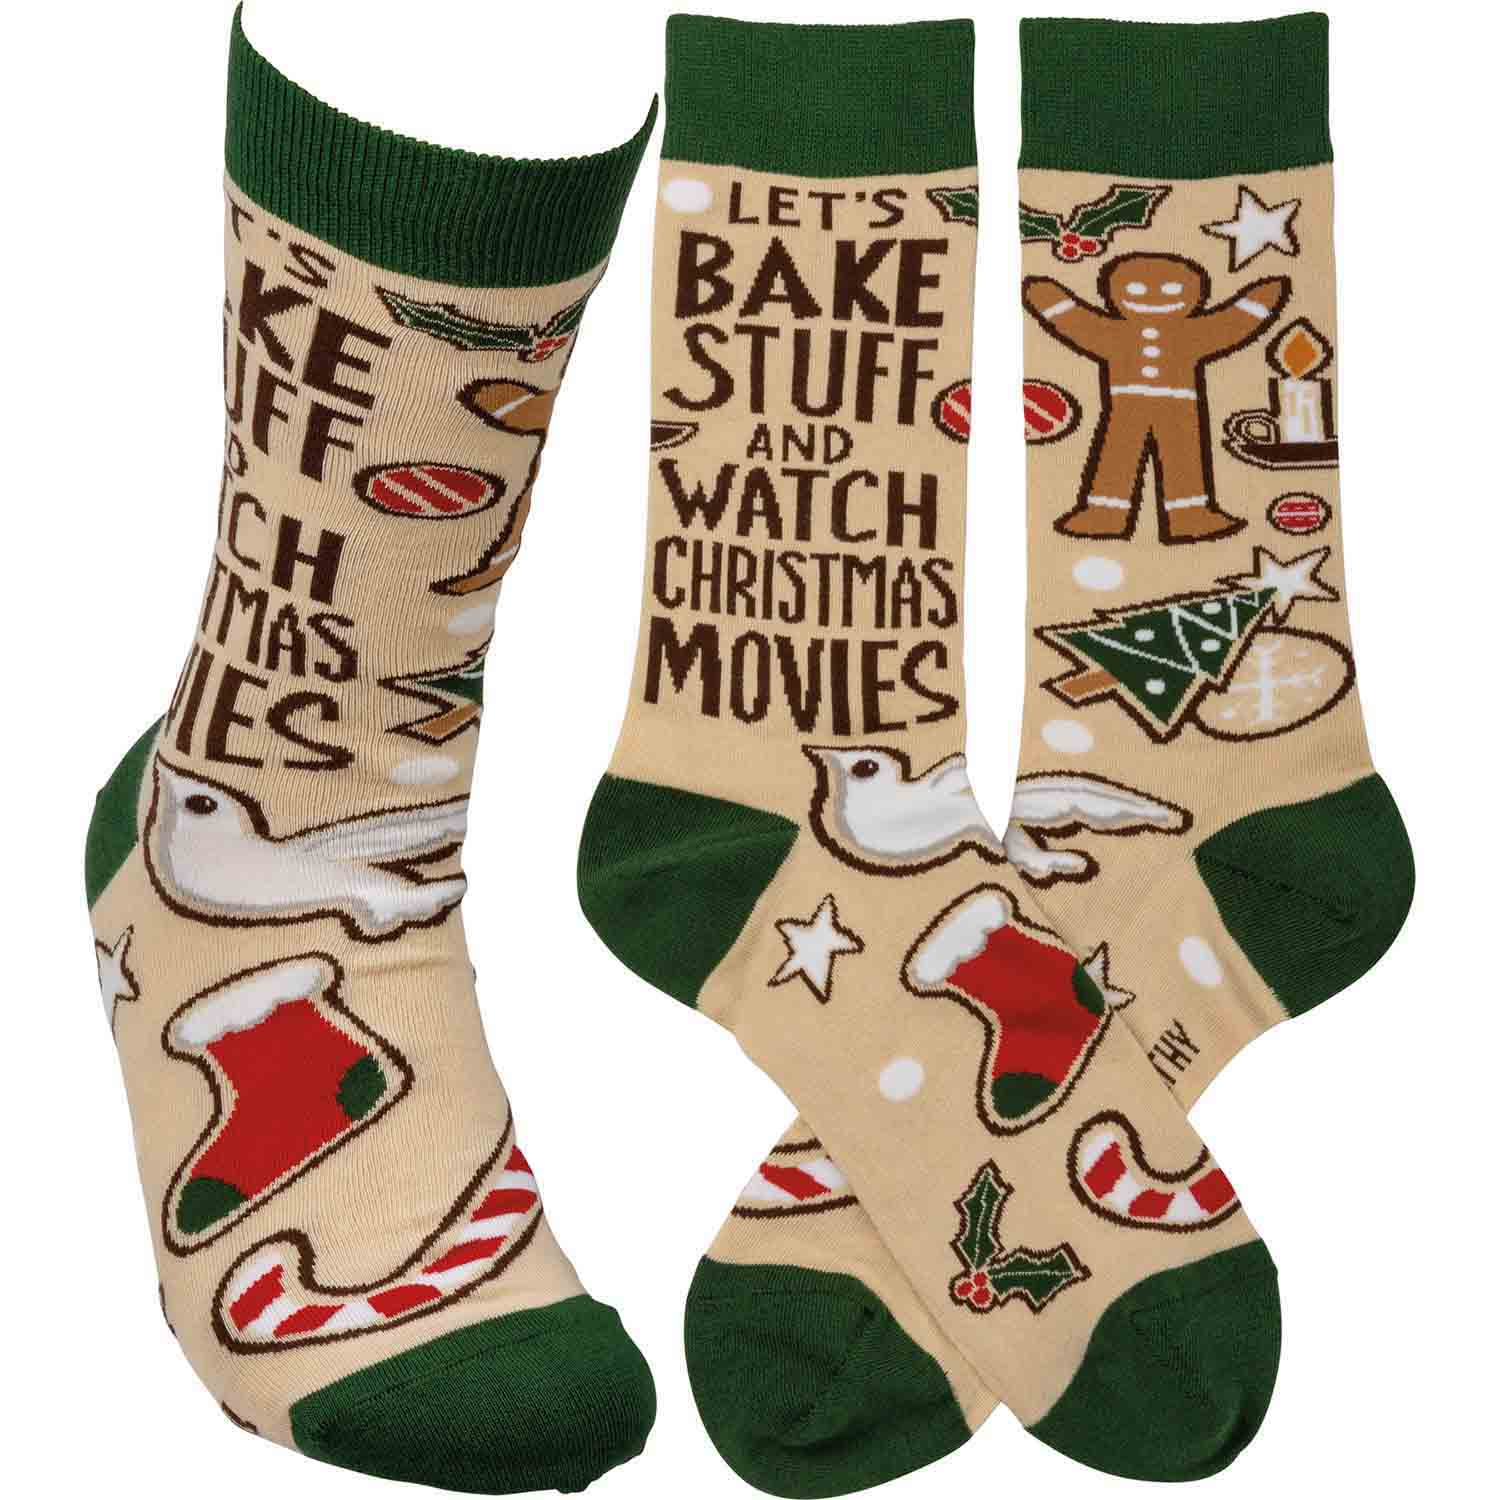 Bake Stuff And Watch Movies Socks